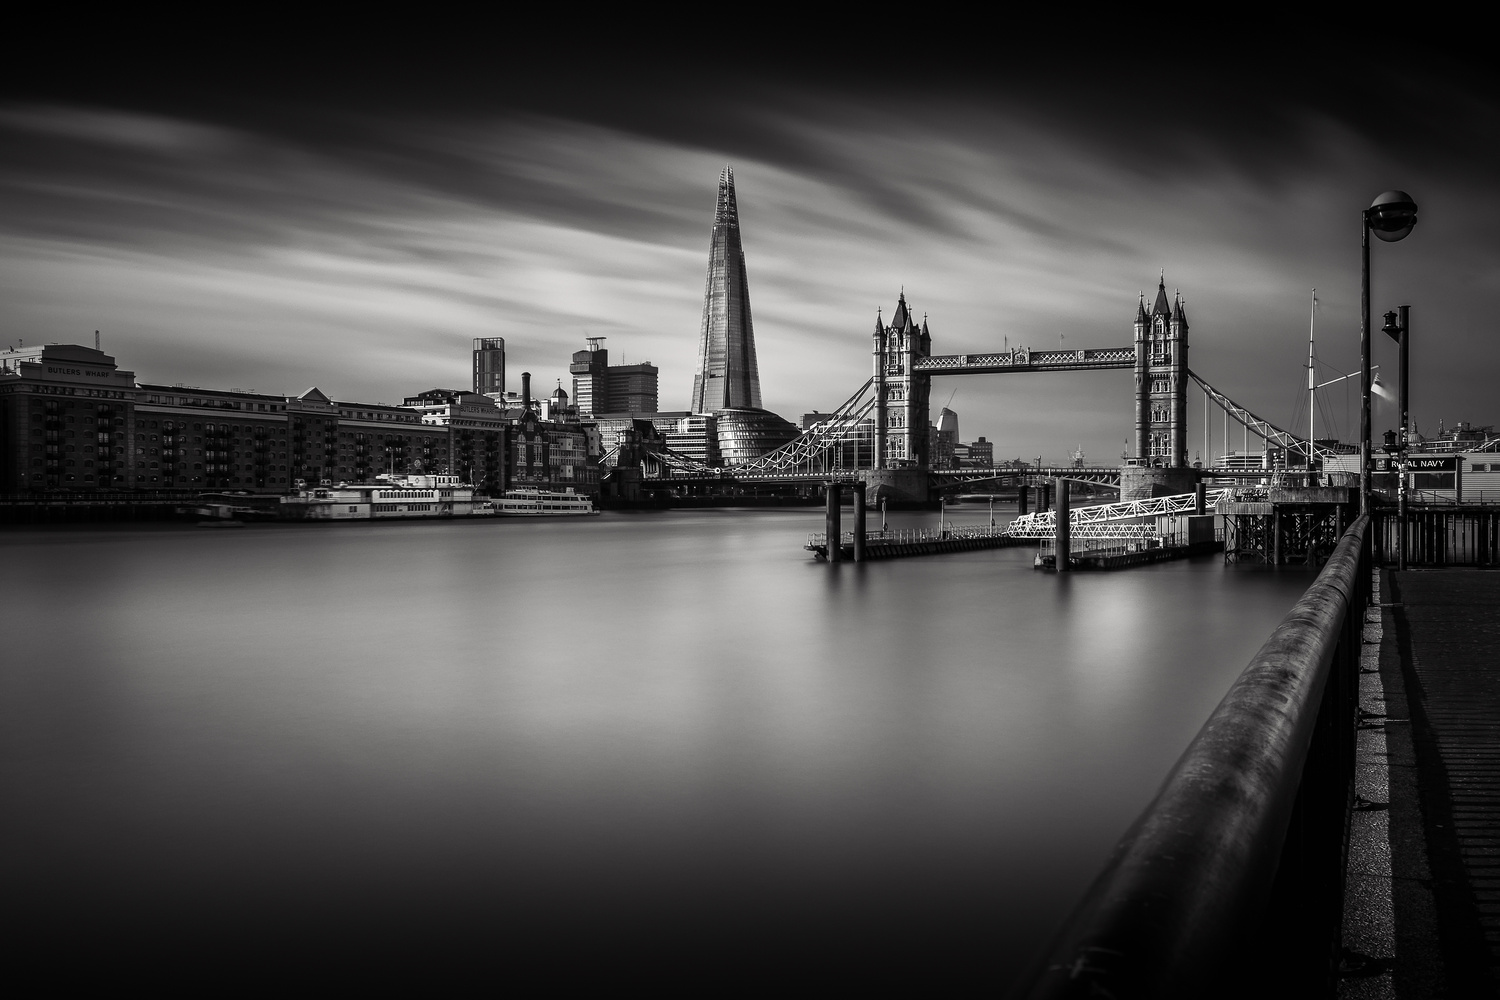 A view on the Tower Bridge by Laurent J.A. Belener